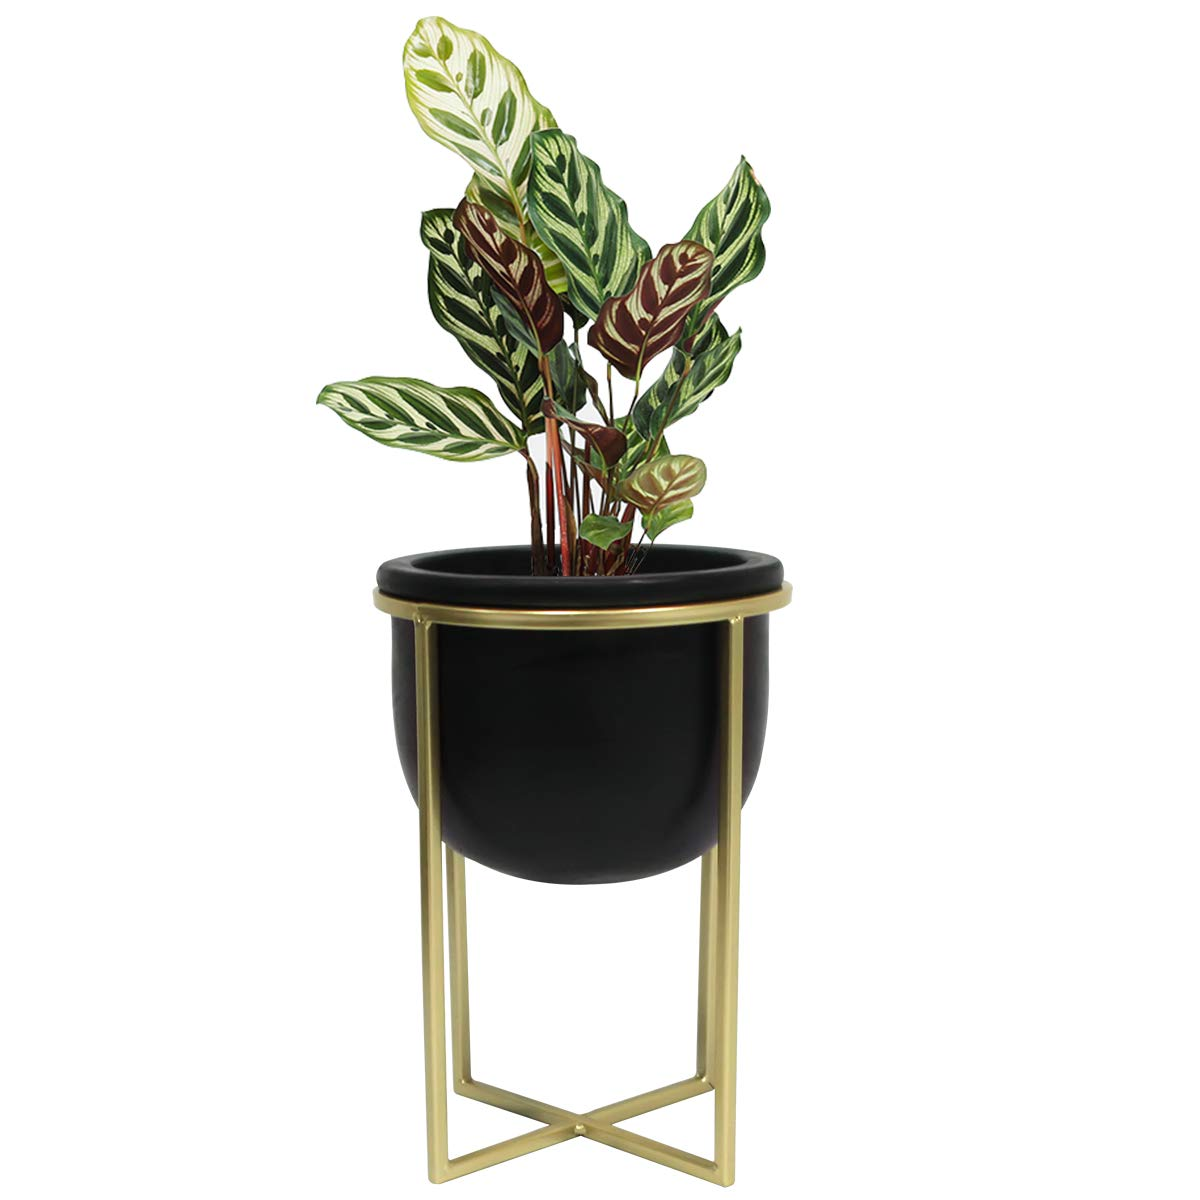 Flower Pot Mid Century Planter – 6.3 Inch Black Cement Round Decorative Tabletop Plant Pot Indoor with Gold Metal Stand for Succulents Cactus Herb Orchid, Desk Decor Gift